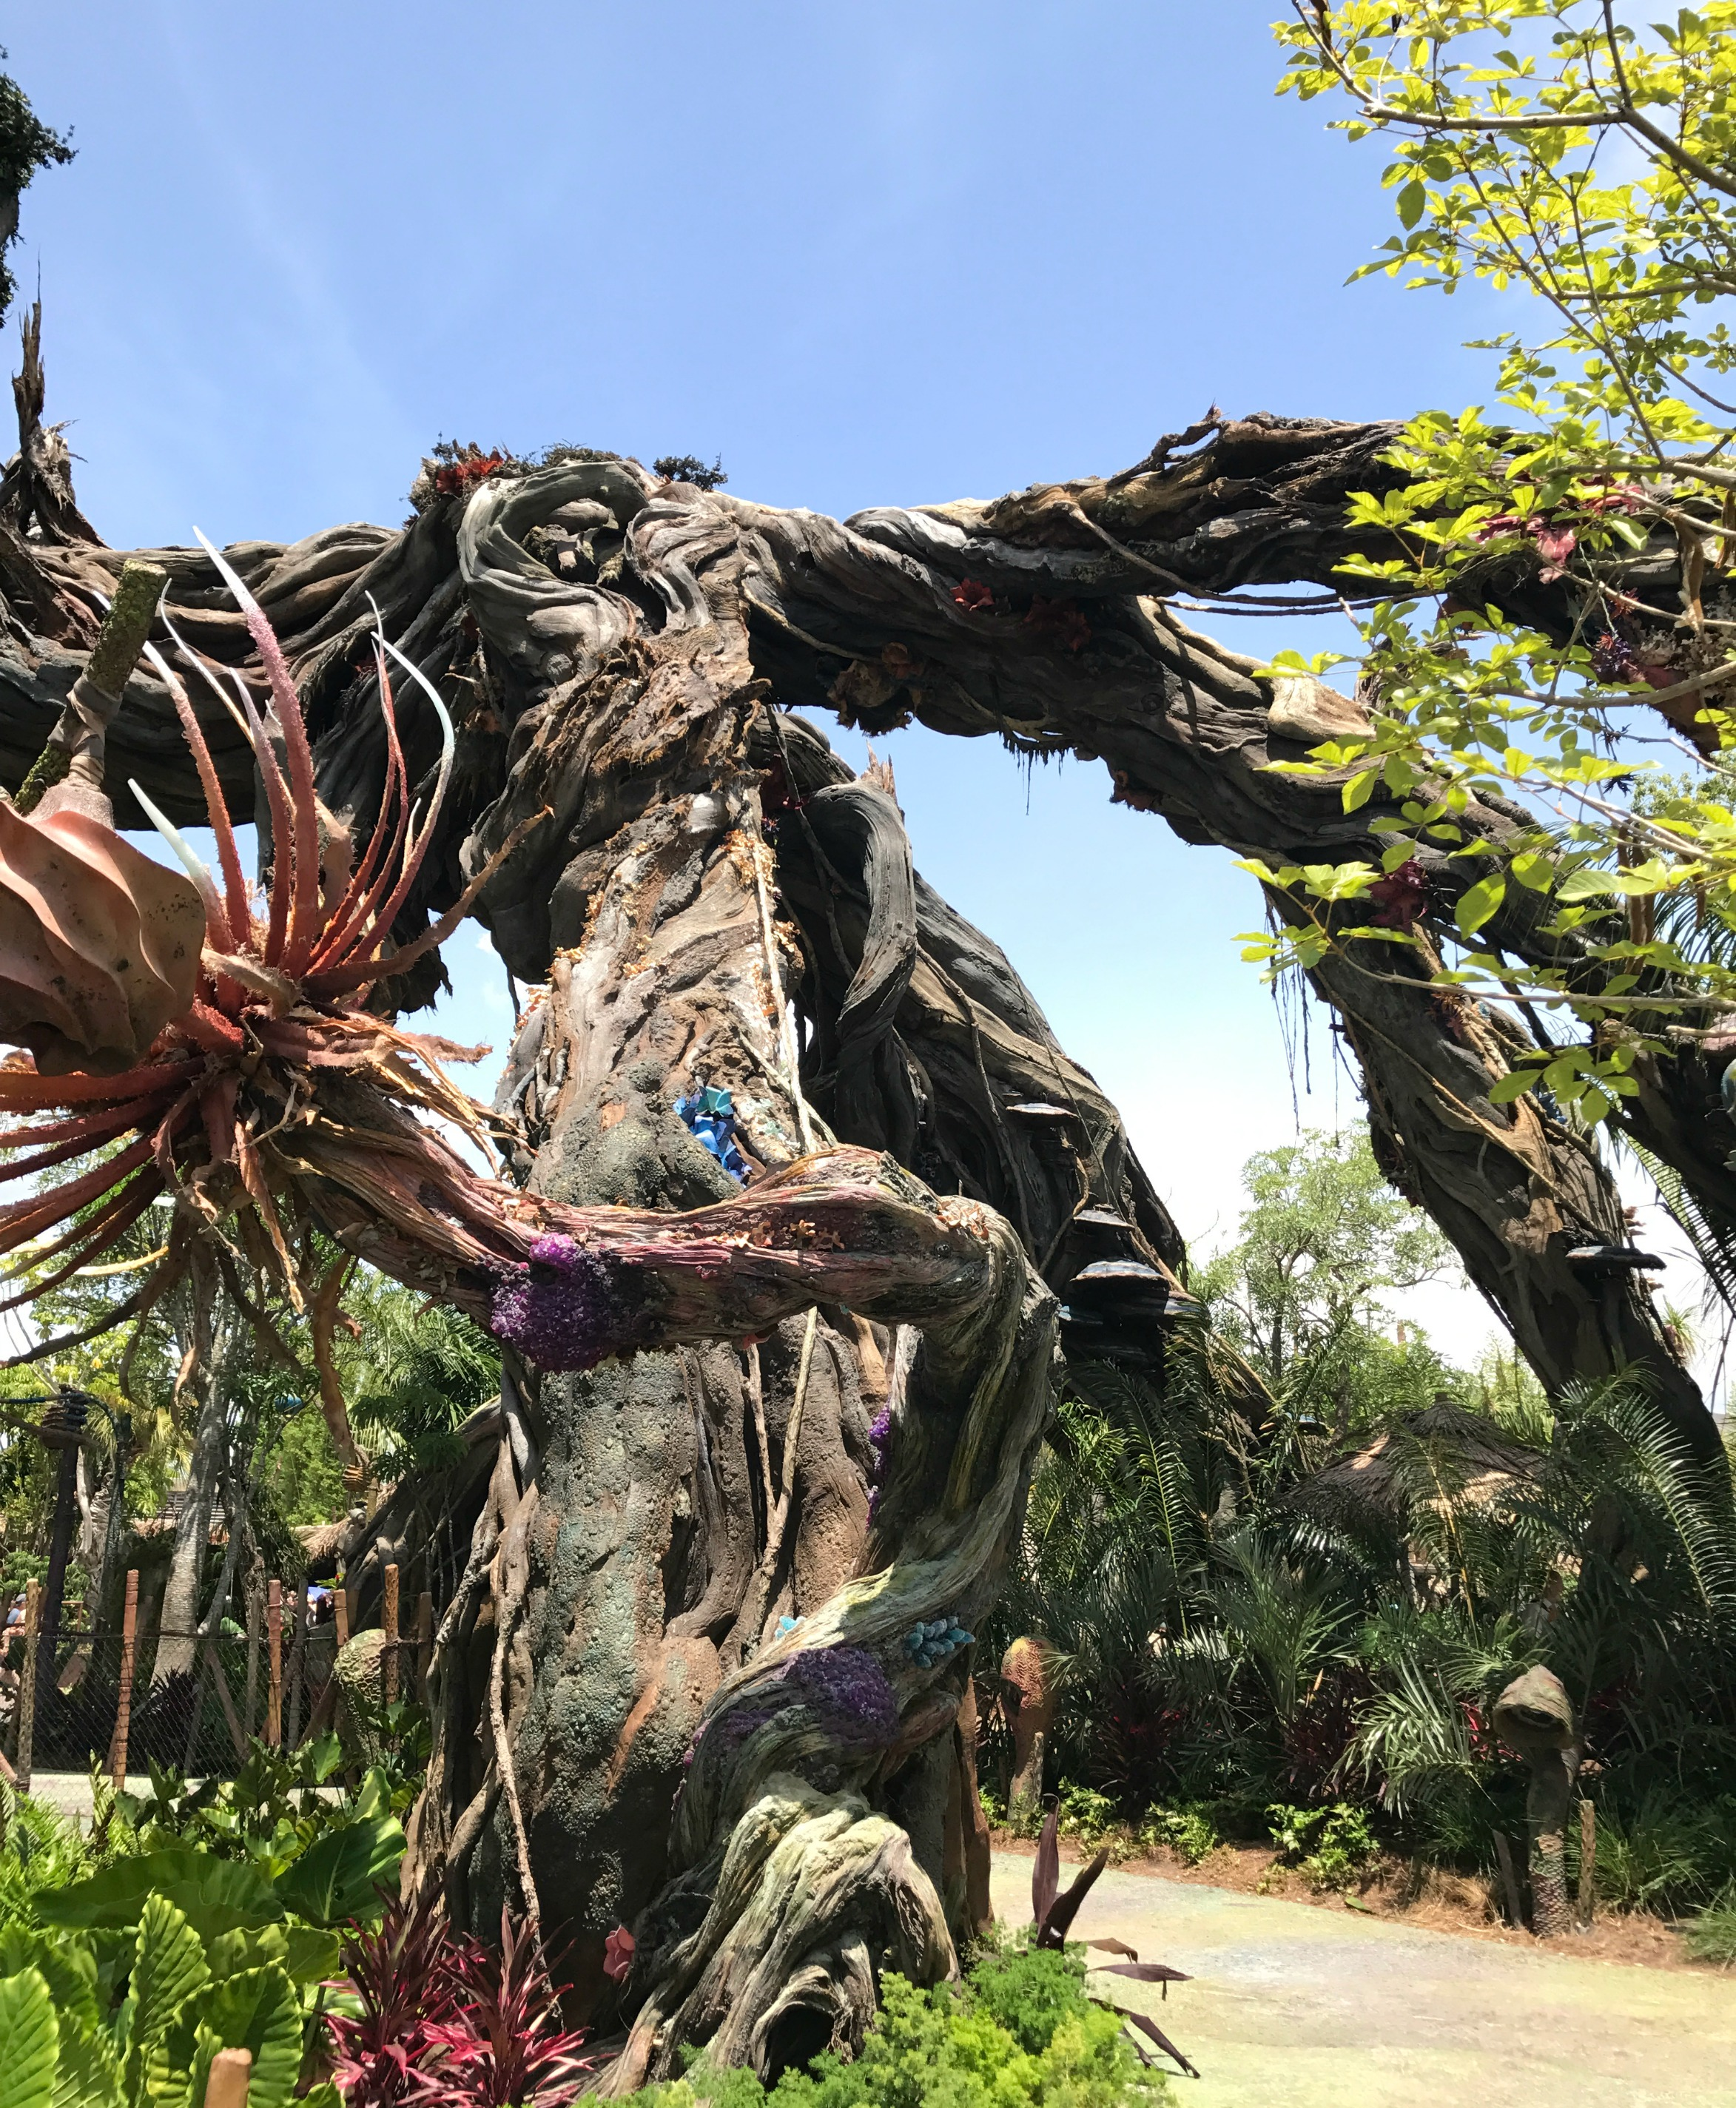 Visiting Disney's Pandora Tips Trees